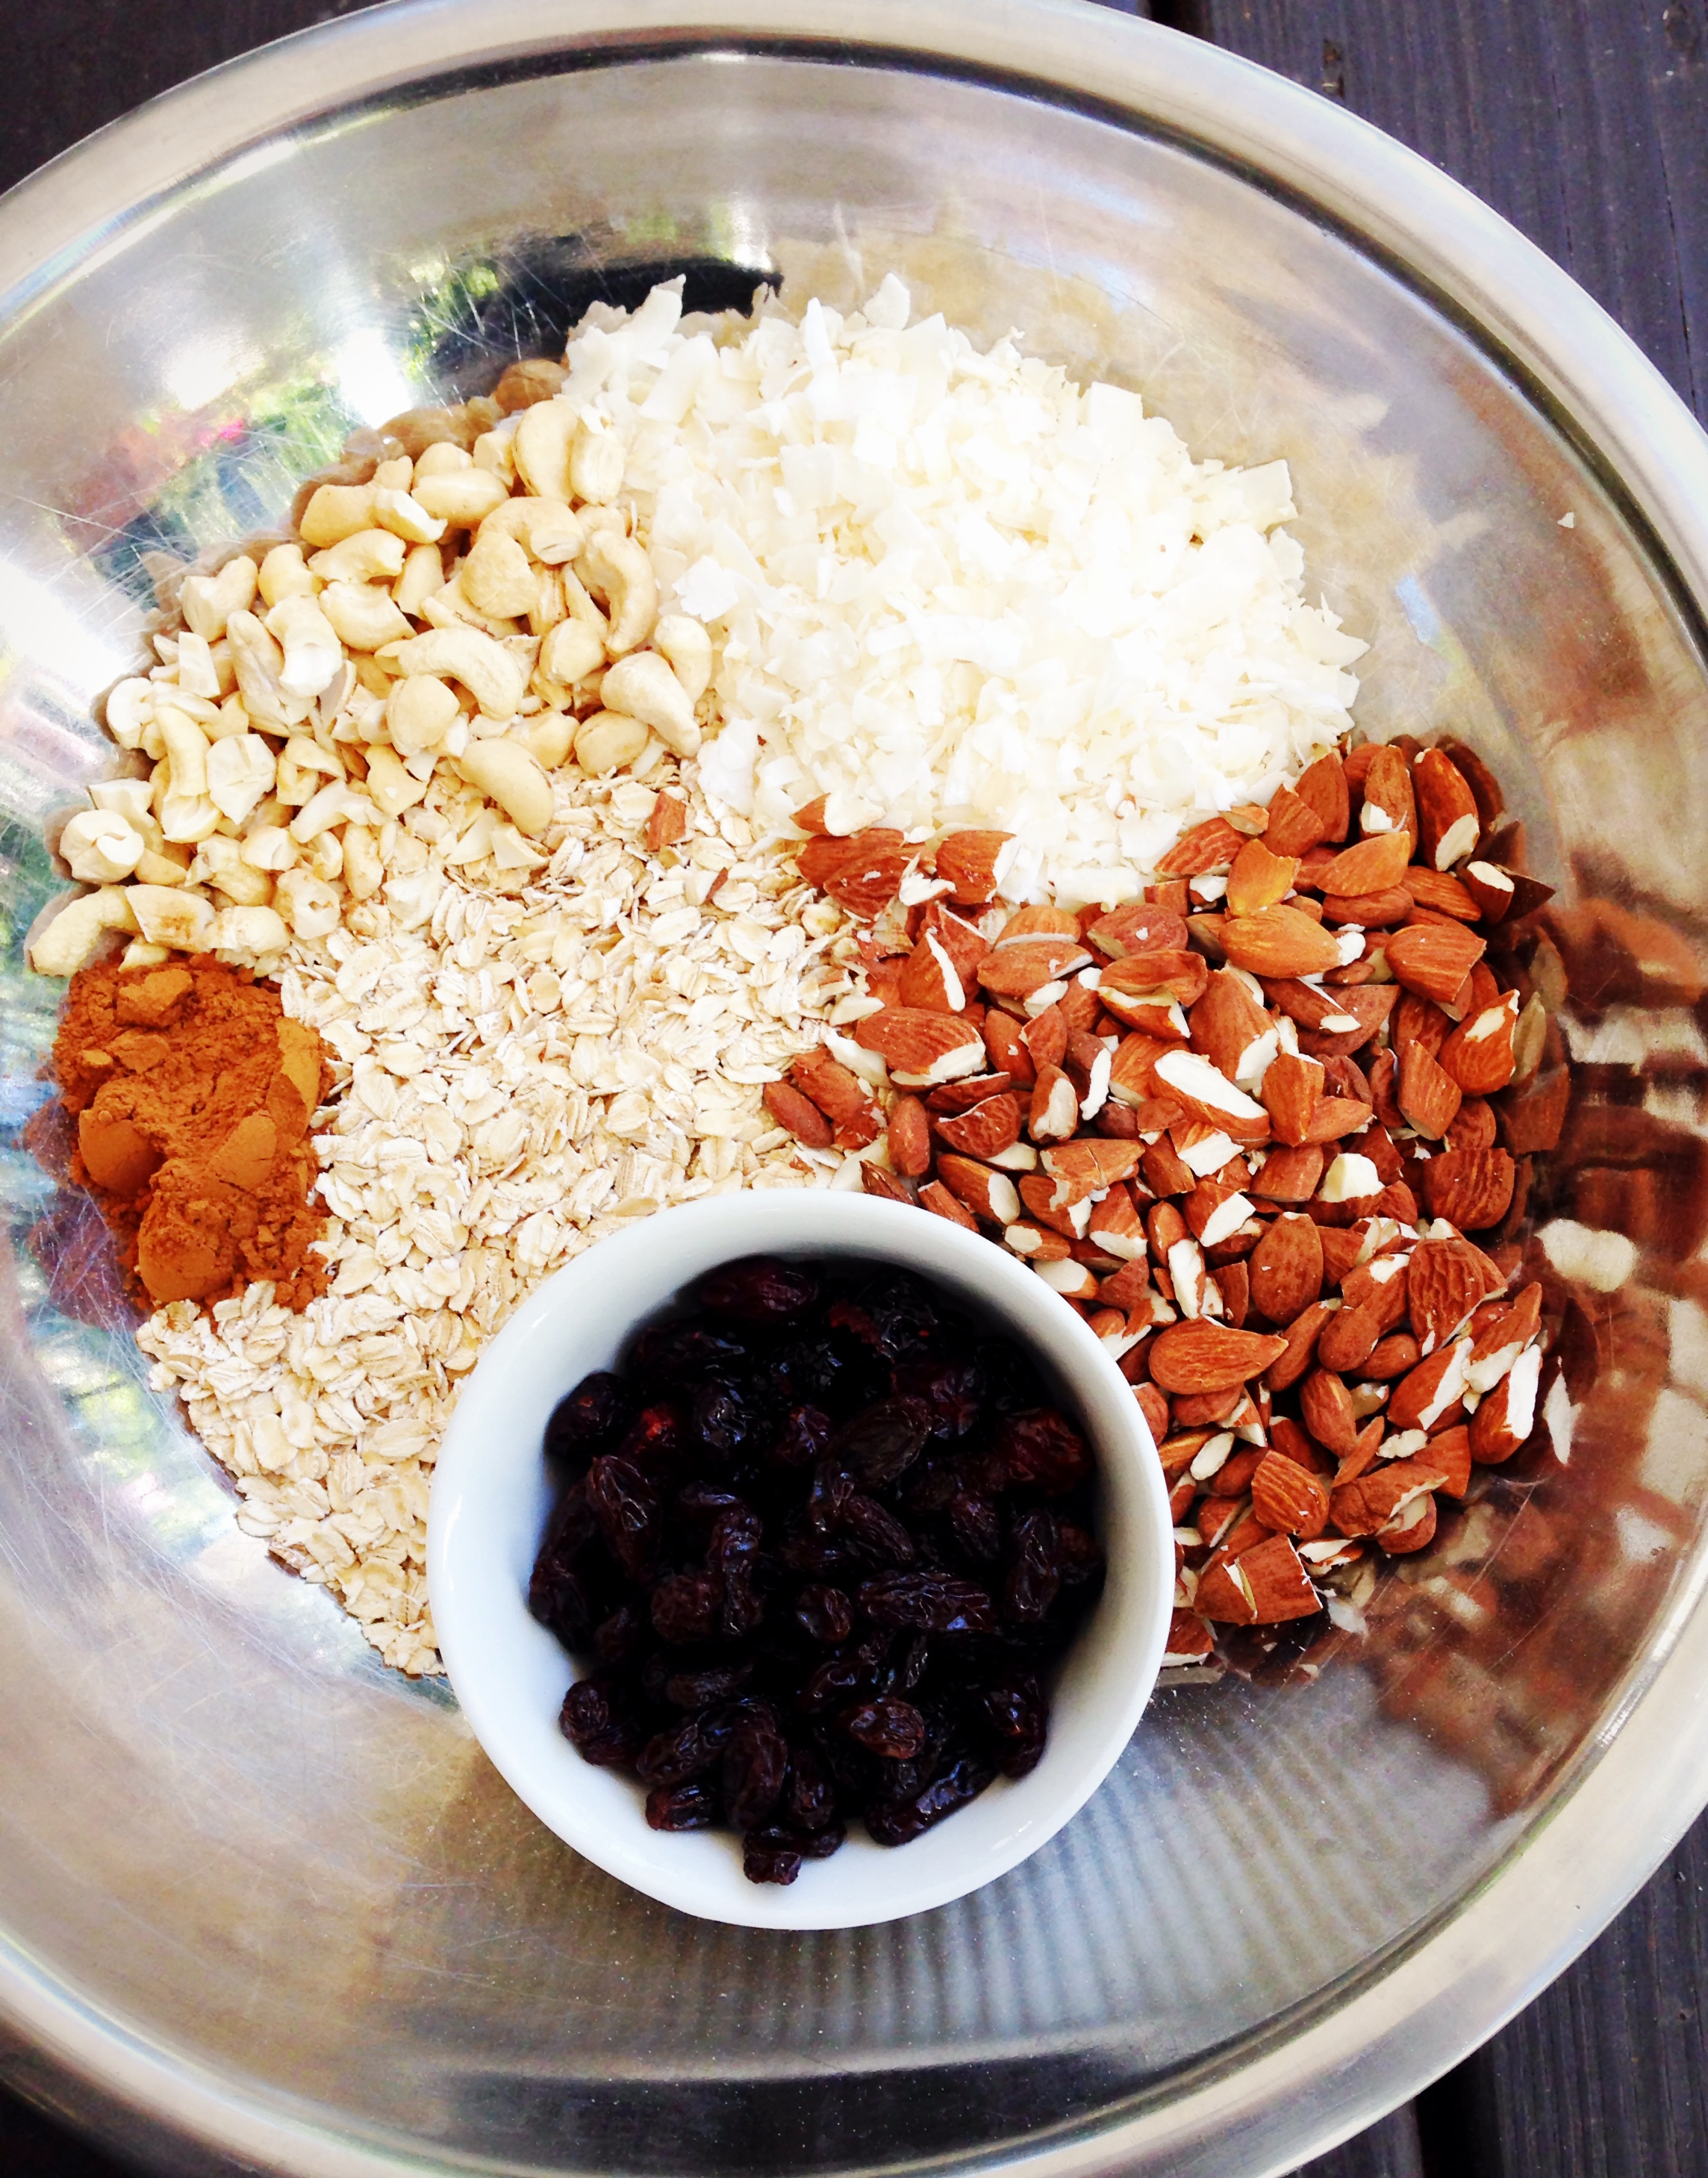 Ingredients for Granola